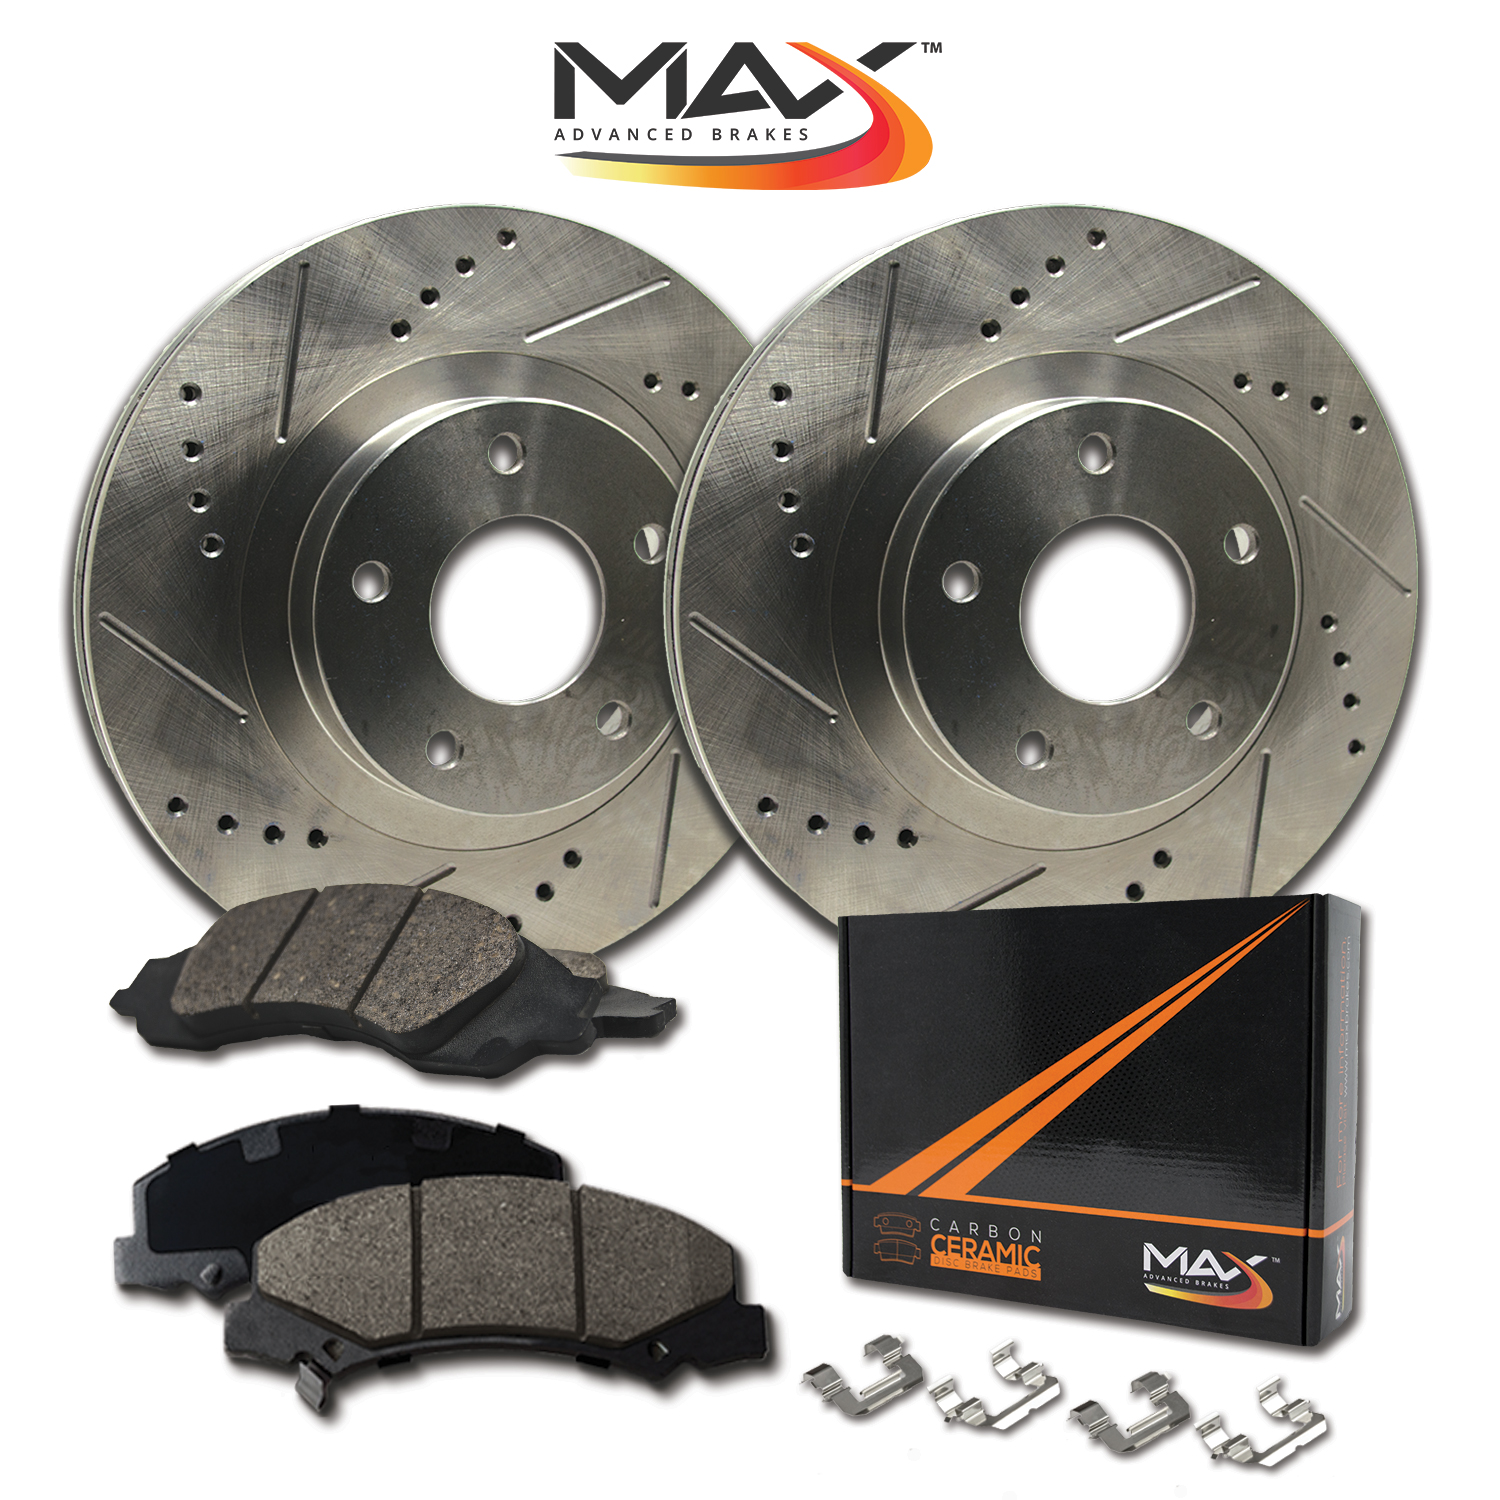 BLACK HART DRILLED SLOTTED BRAKE ROTORS AND CERAMIC PAD BHCR.35160.02 REAR KIT